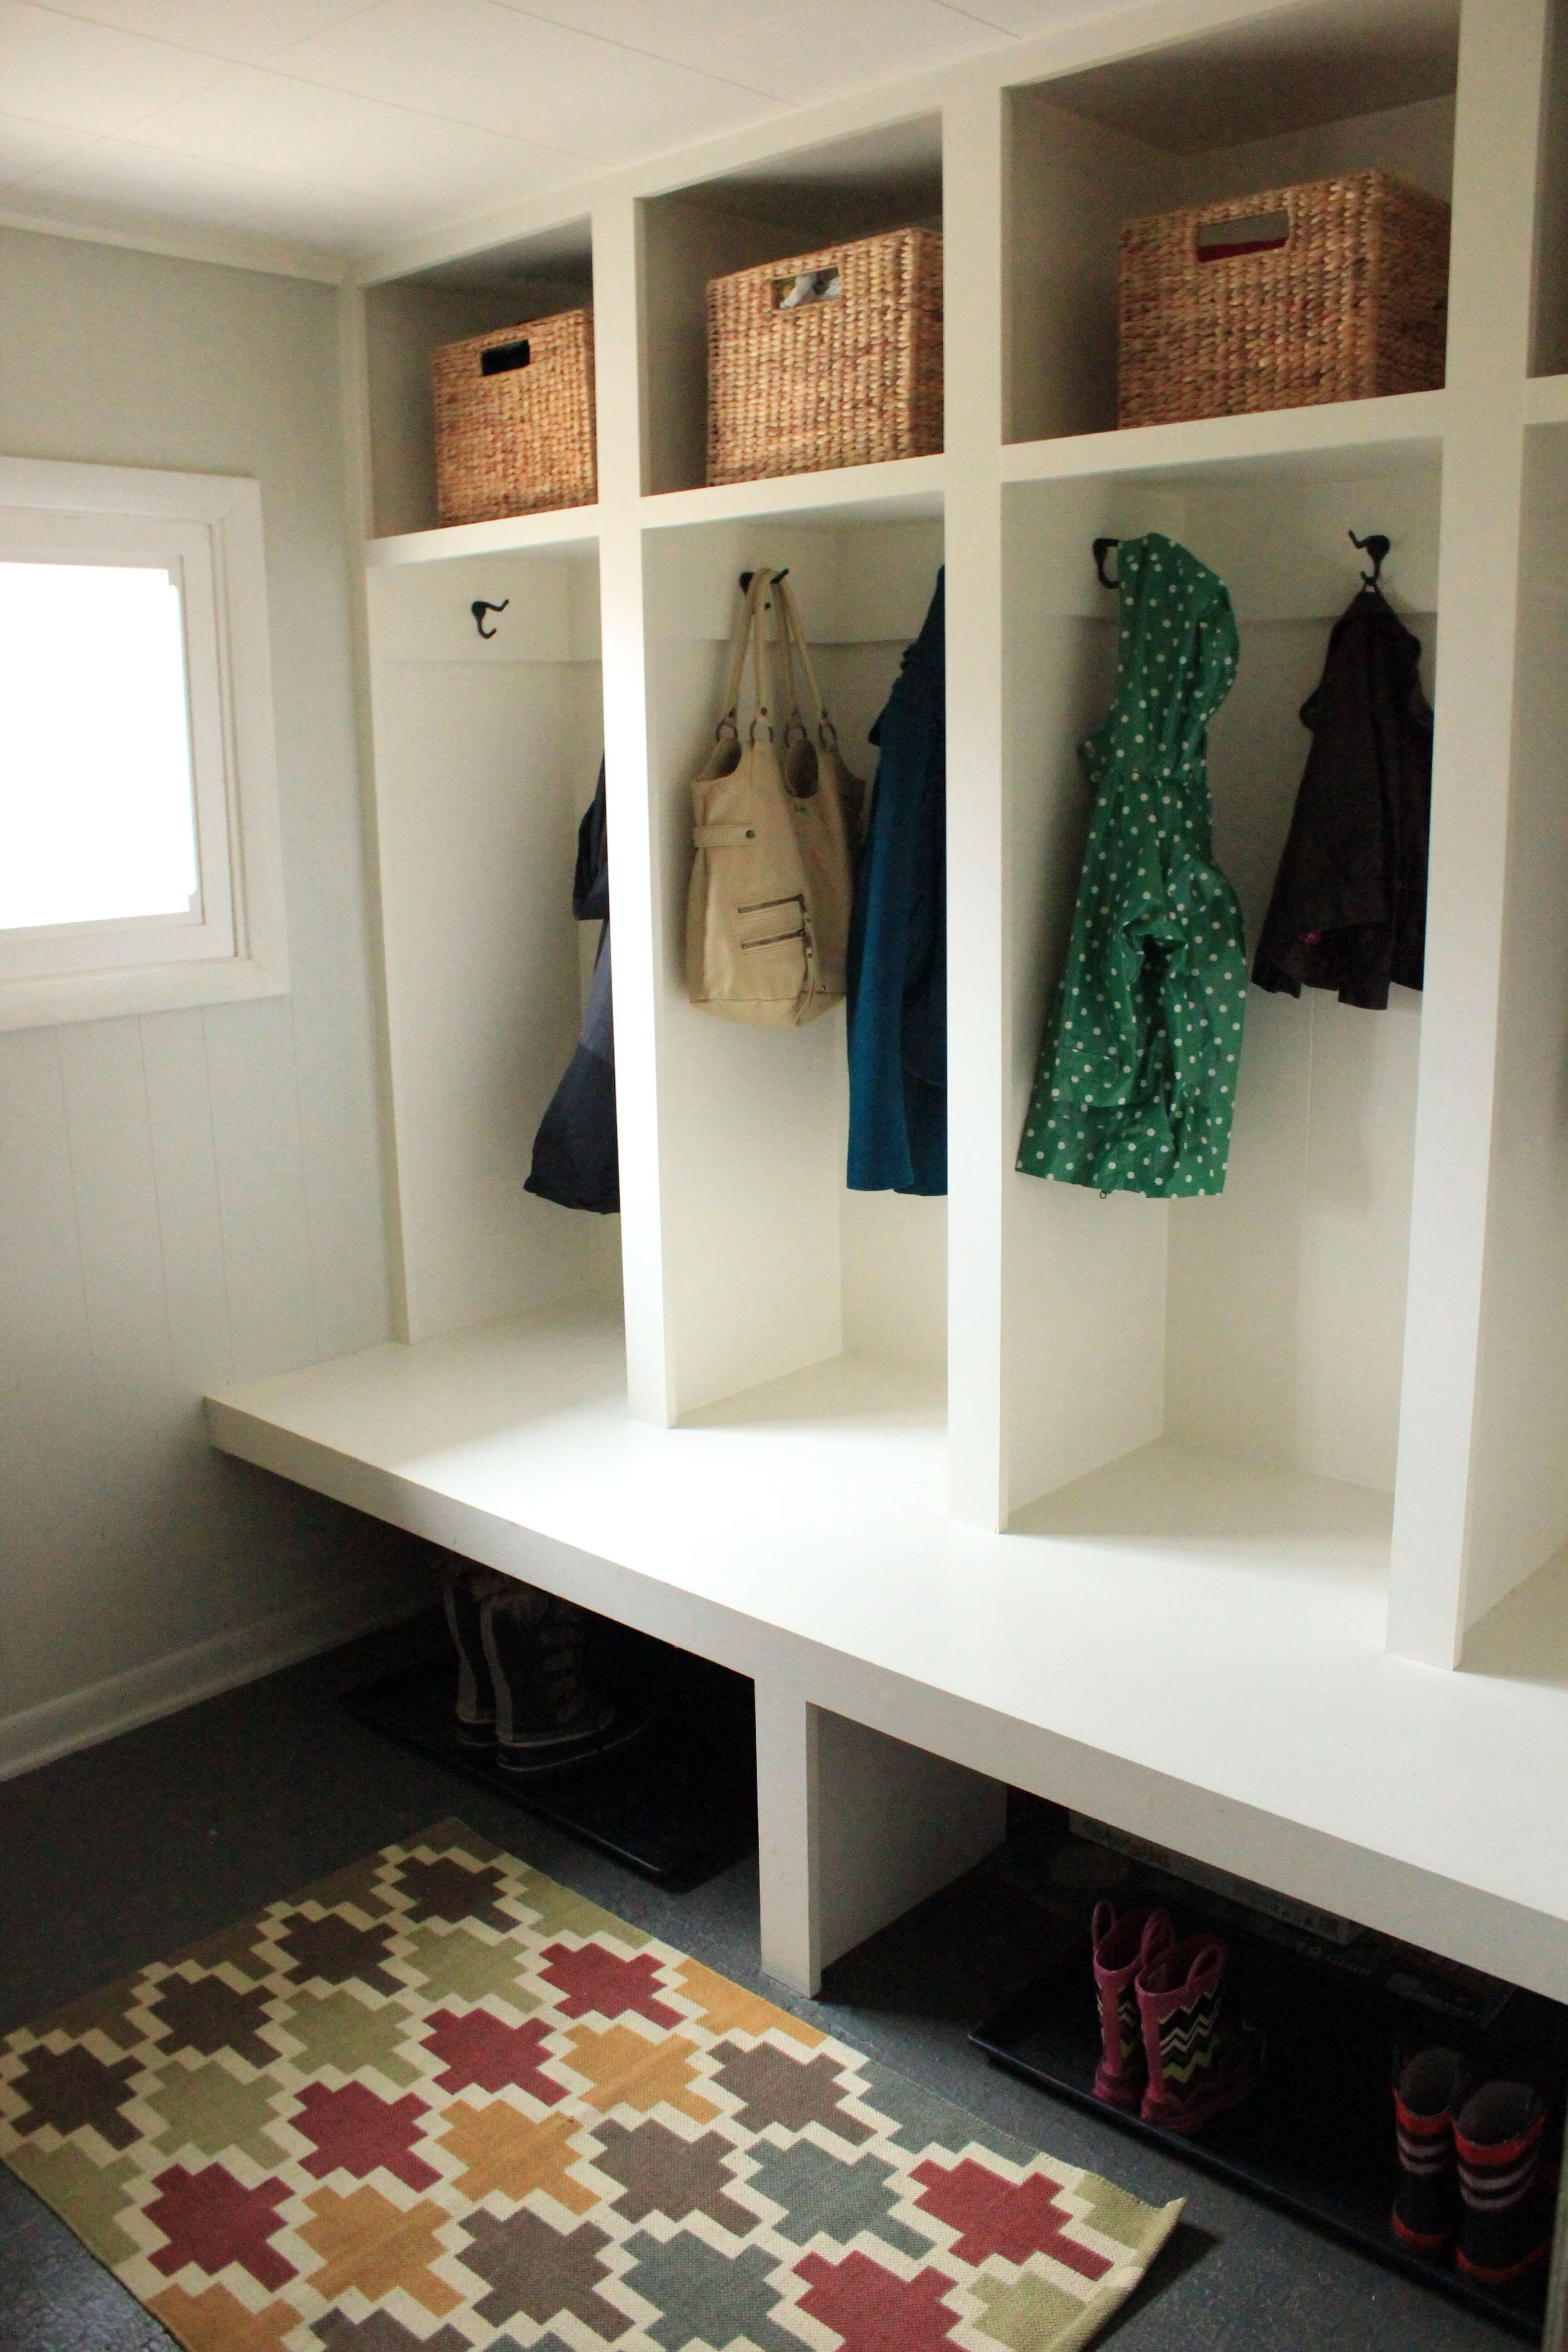 45+ Superb Mudroom U0026 Entryway Design Ideas With Benches And Storage Lockers  (PICTURES